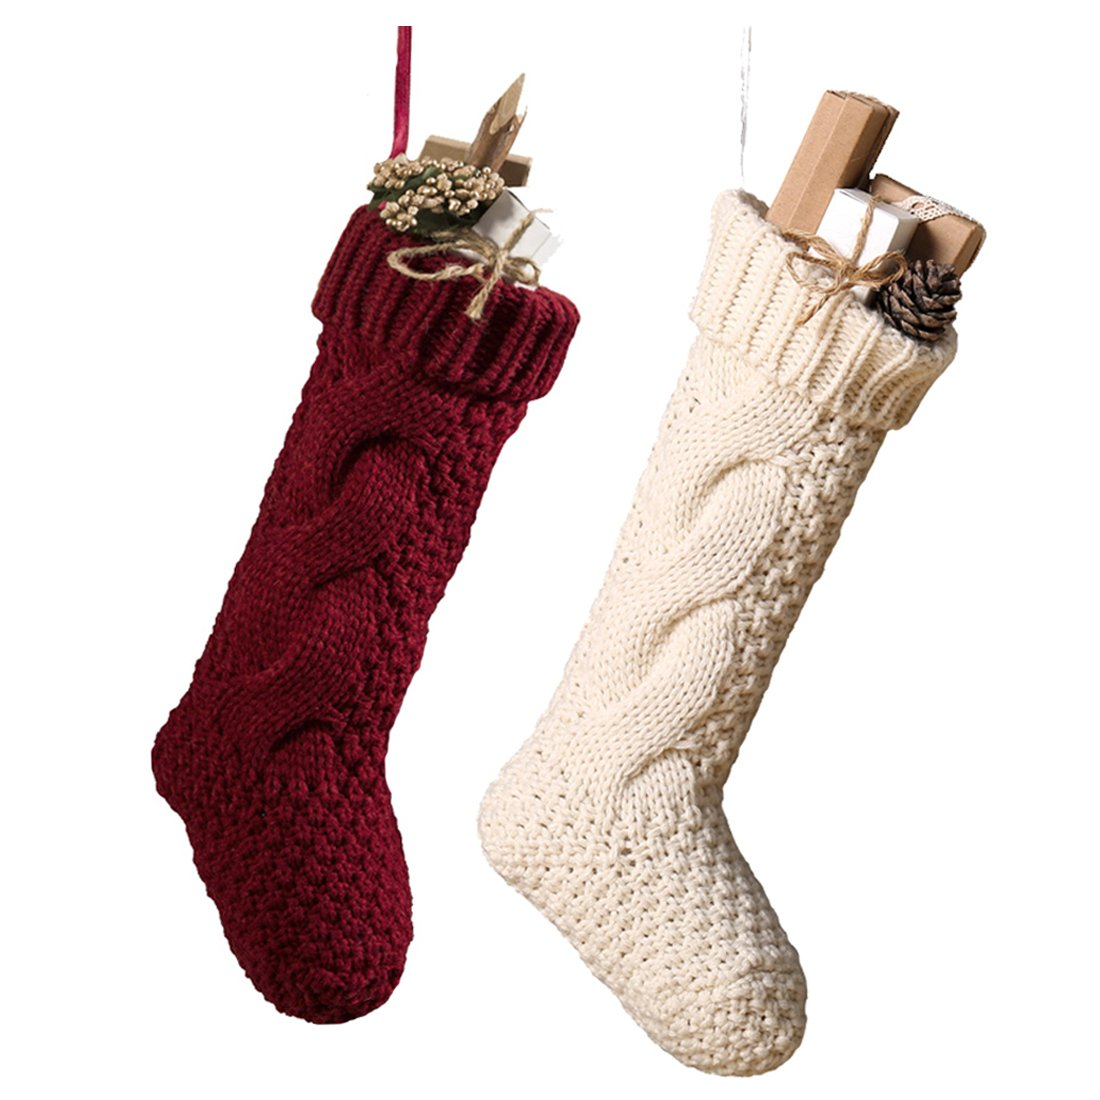 17 Inch Knitted Christmas Stockings, Pack 2 Xmas Gift Bags of Burgundy and White